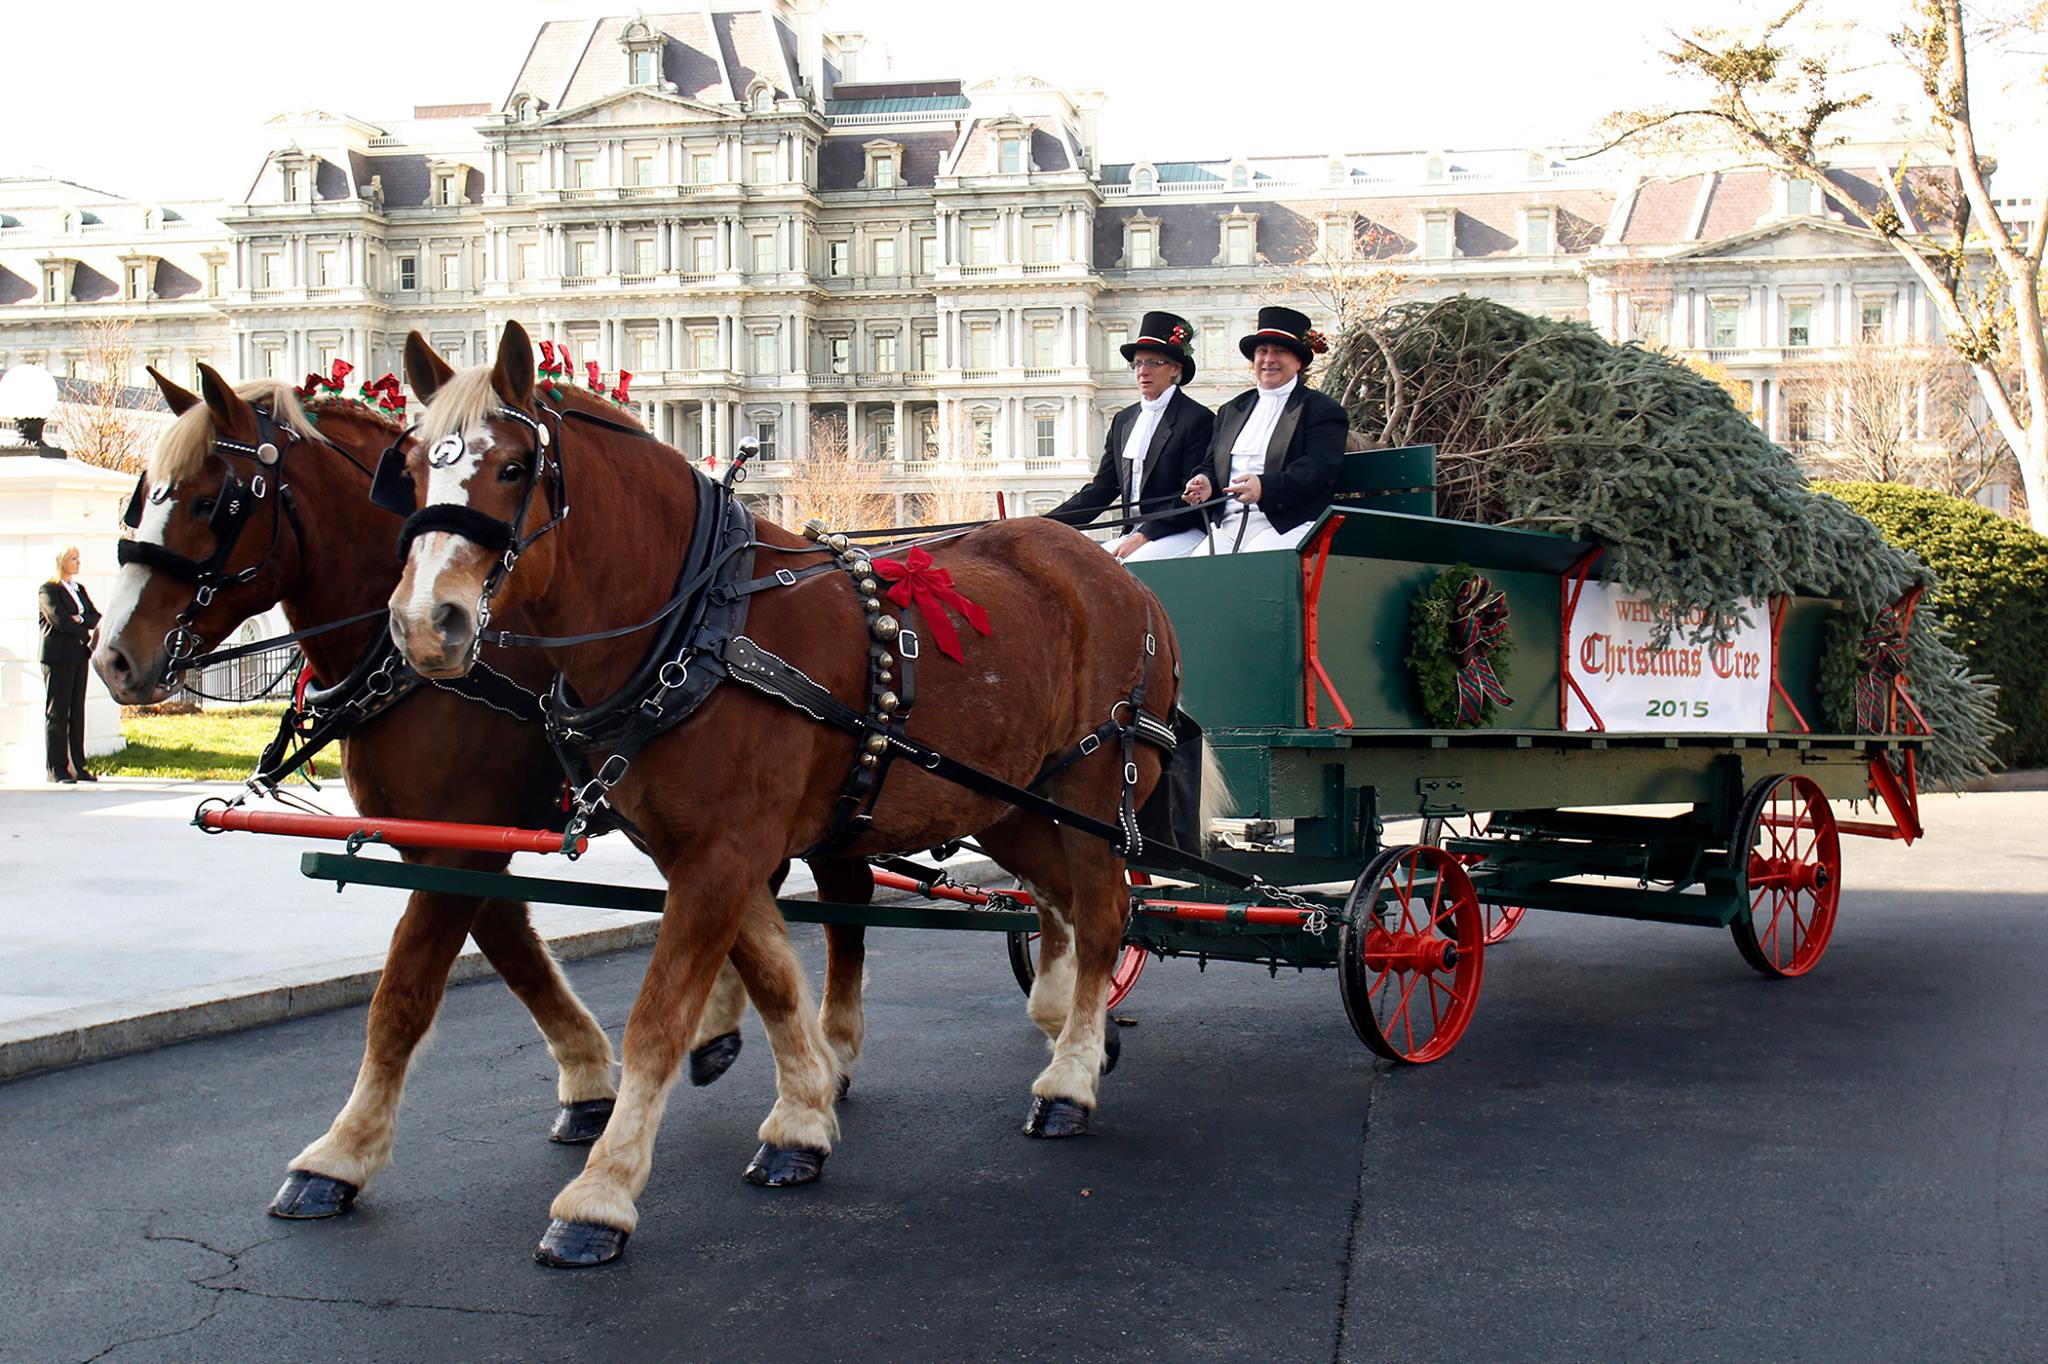 7 Magical Horse Drawn Carriage Rides In Virginia